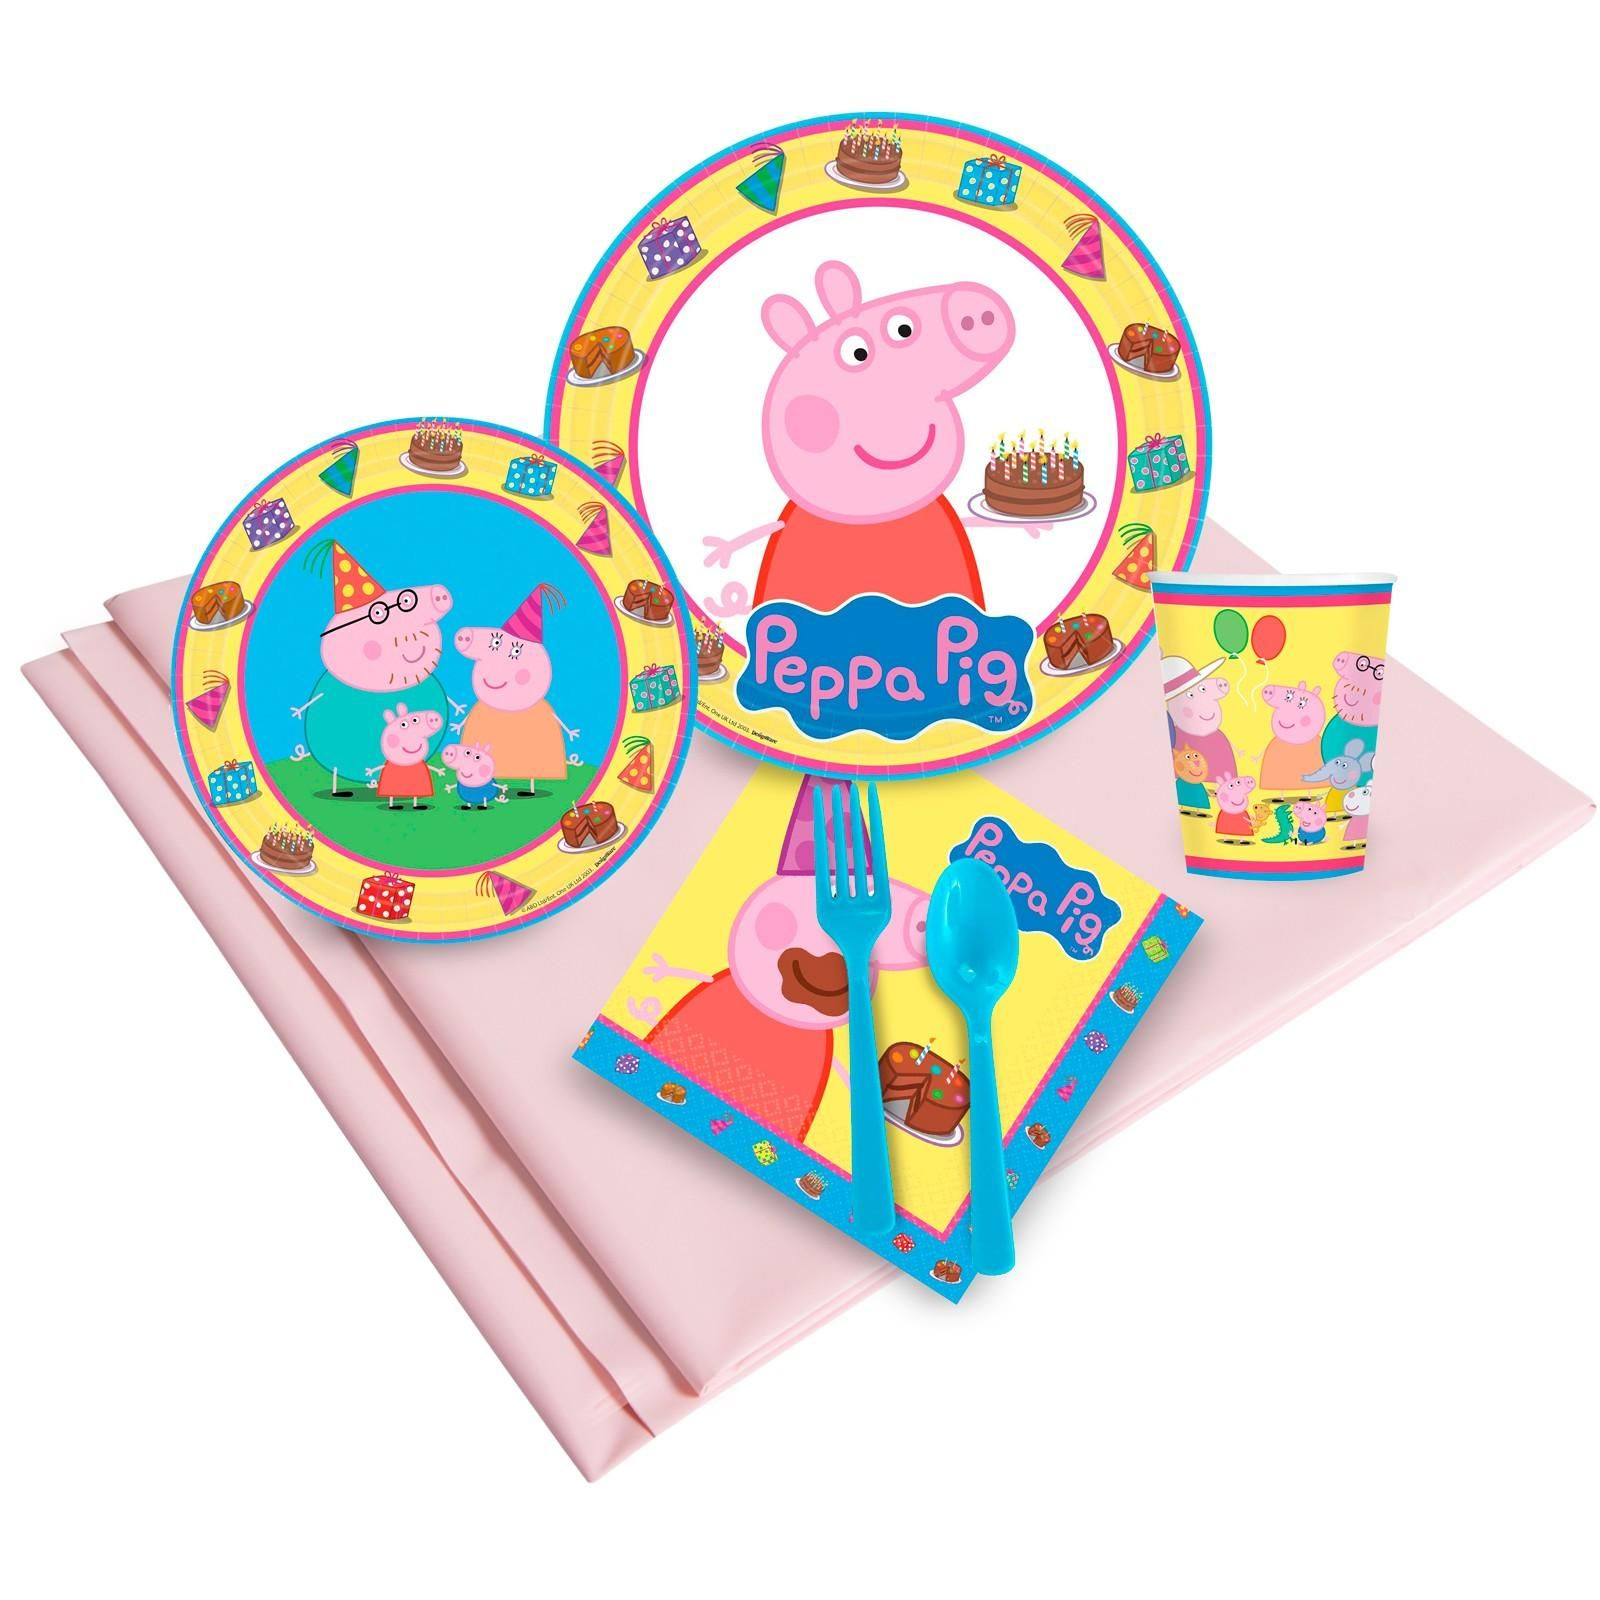 Peppa Pig Party Pack. Party Pack includes dinner plates ...  sc 1 st  Pinterest & Peppa Pig Party Pack | Pig party Peppa pig birthday cake and Pig ...